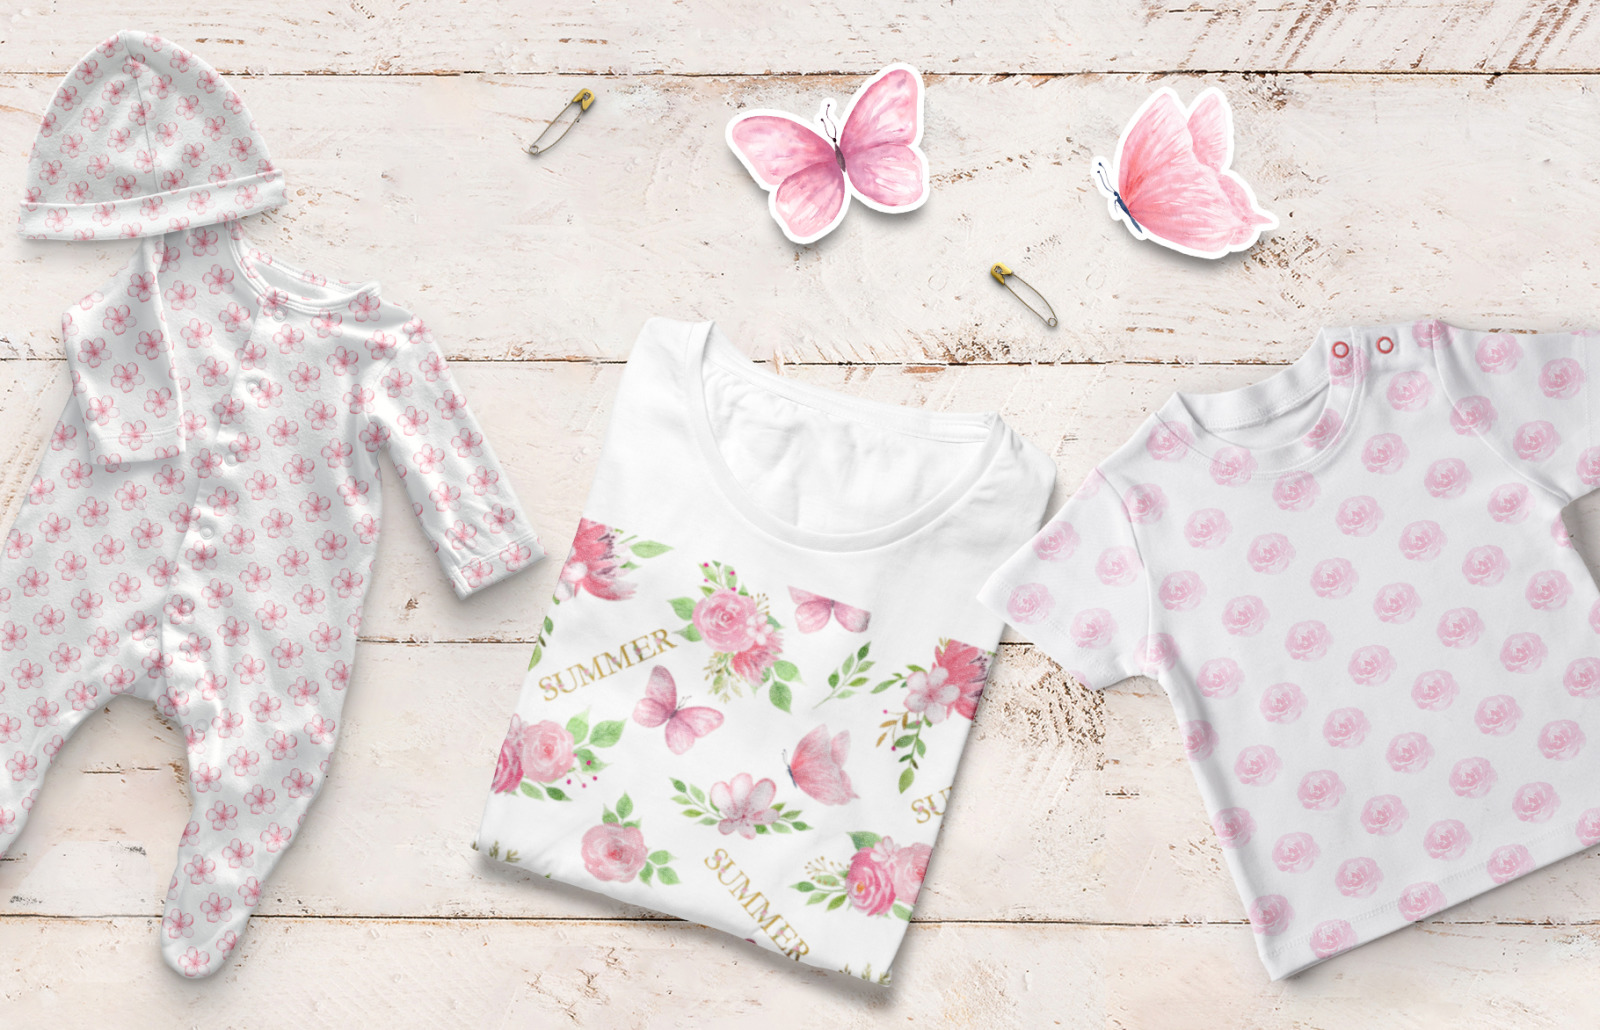 Watercolor Floral and Butterfly Tenderly Collection.